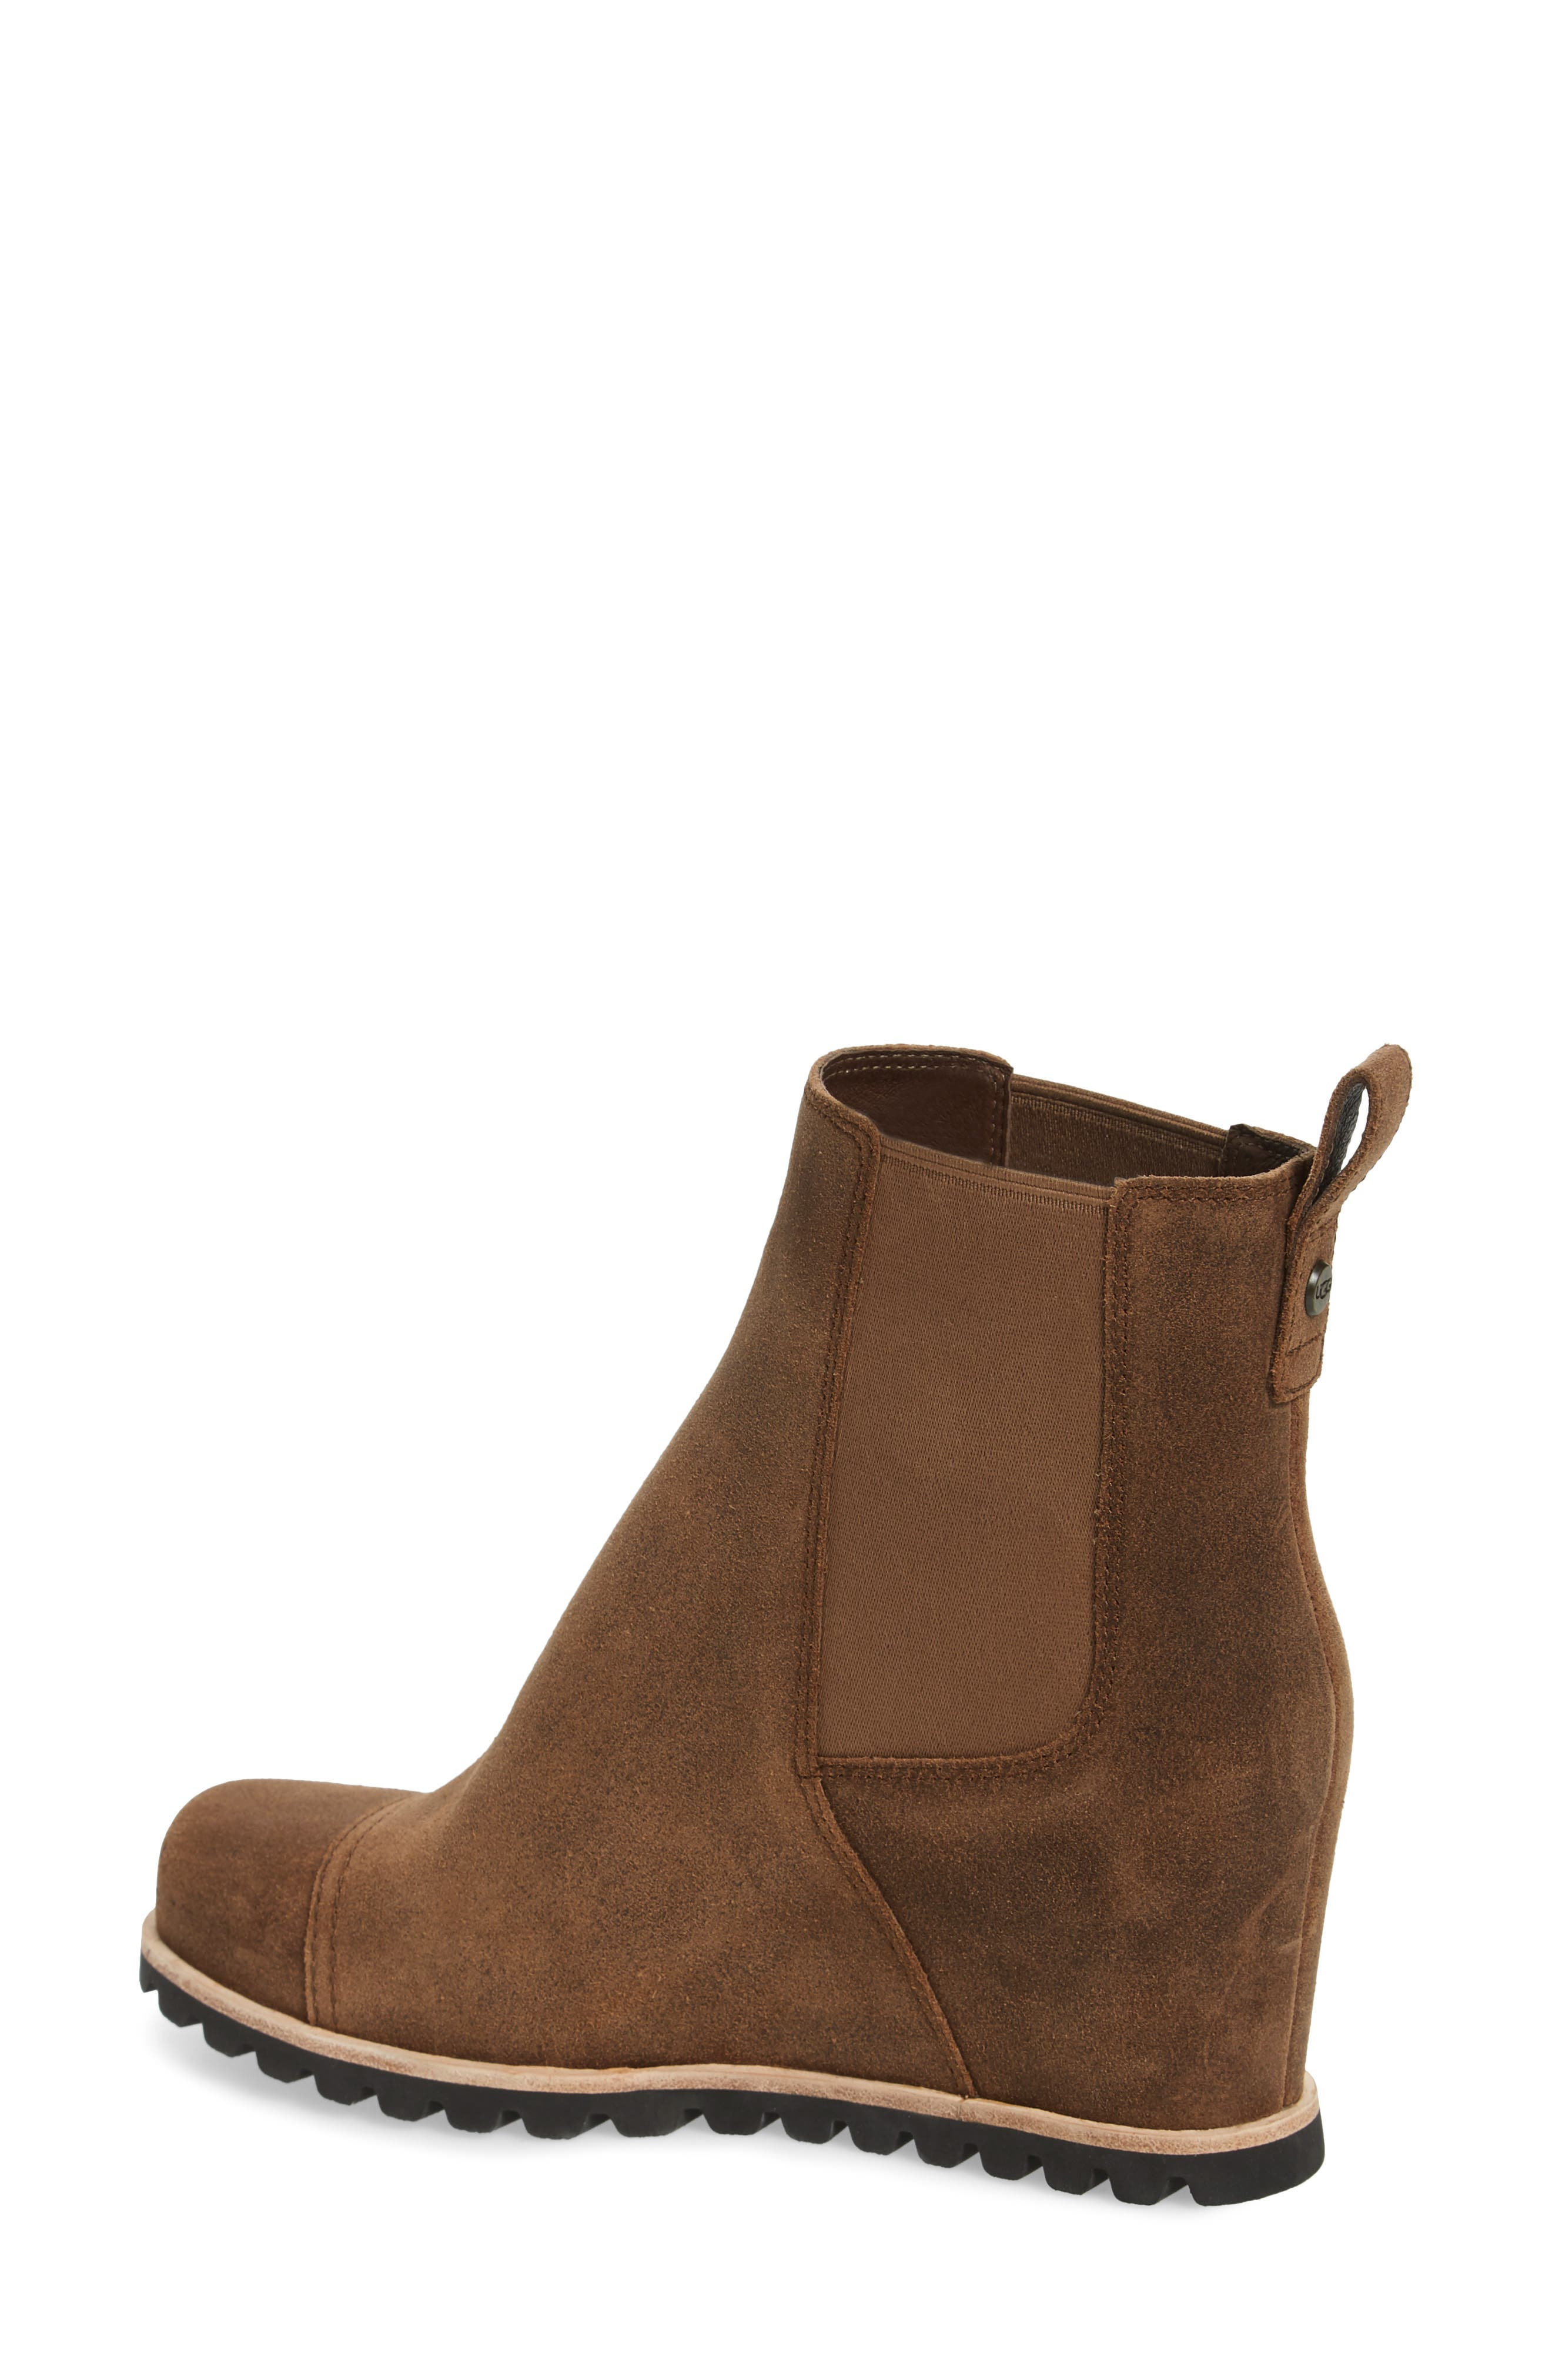 UGG<SUP>®</SUP>, Pax Waterproof Wedge Boot, Alternate thumbnail 2, color, 213